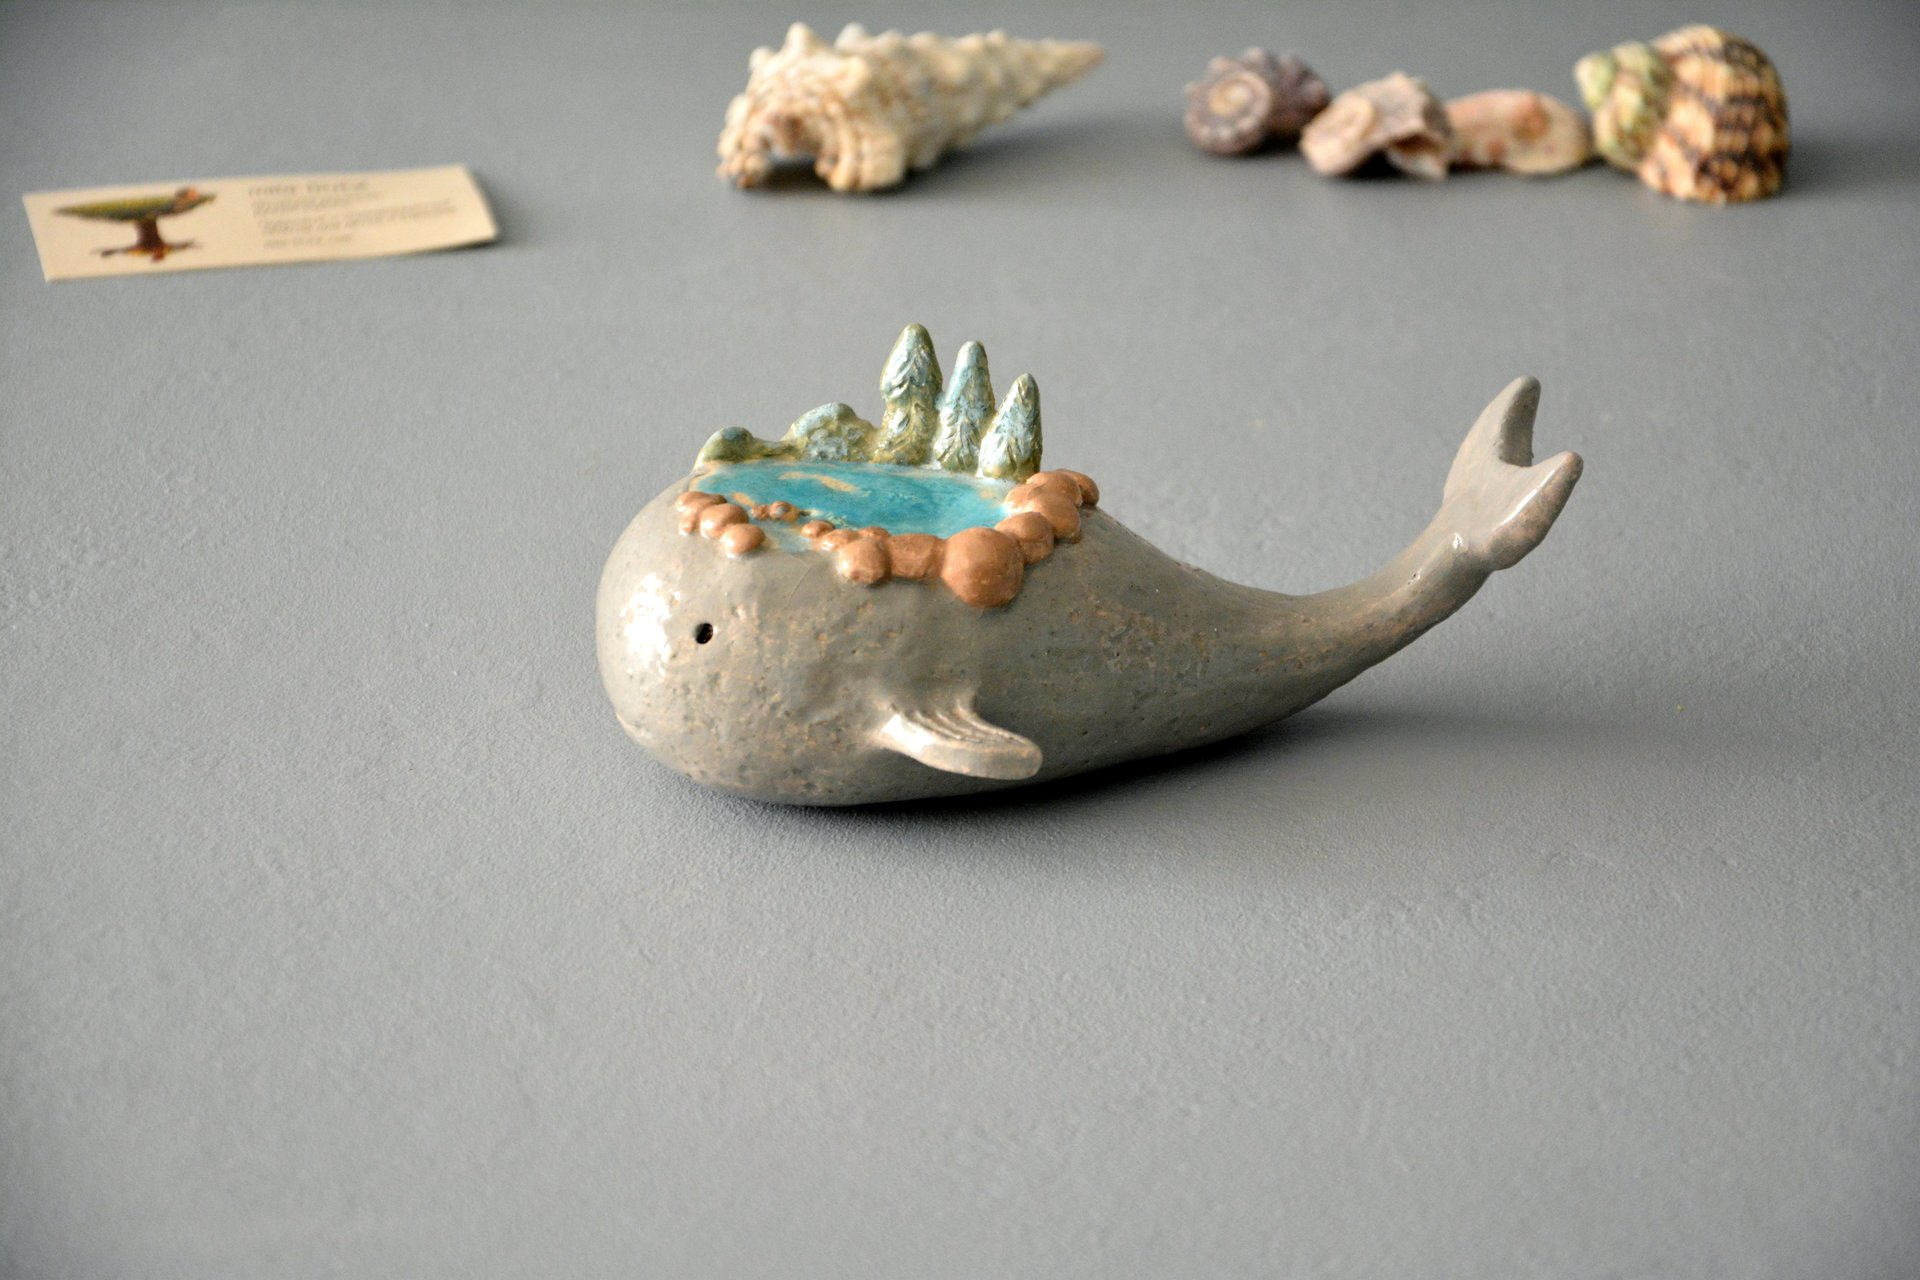 Little whale - Ceramic fishes, height - 5 cm, photo 5 of 5.